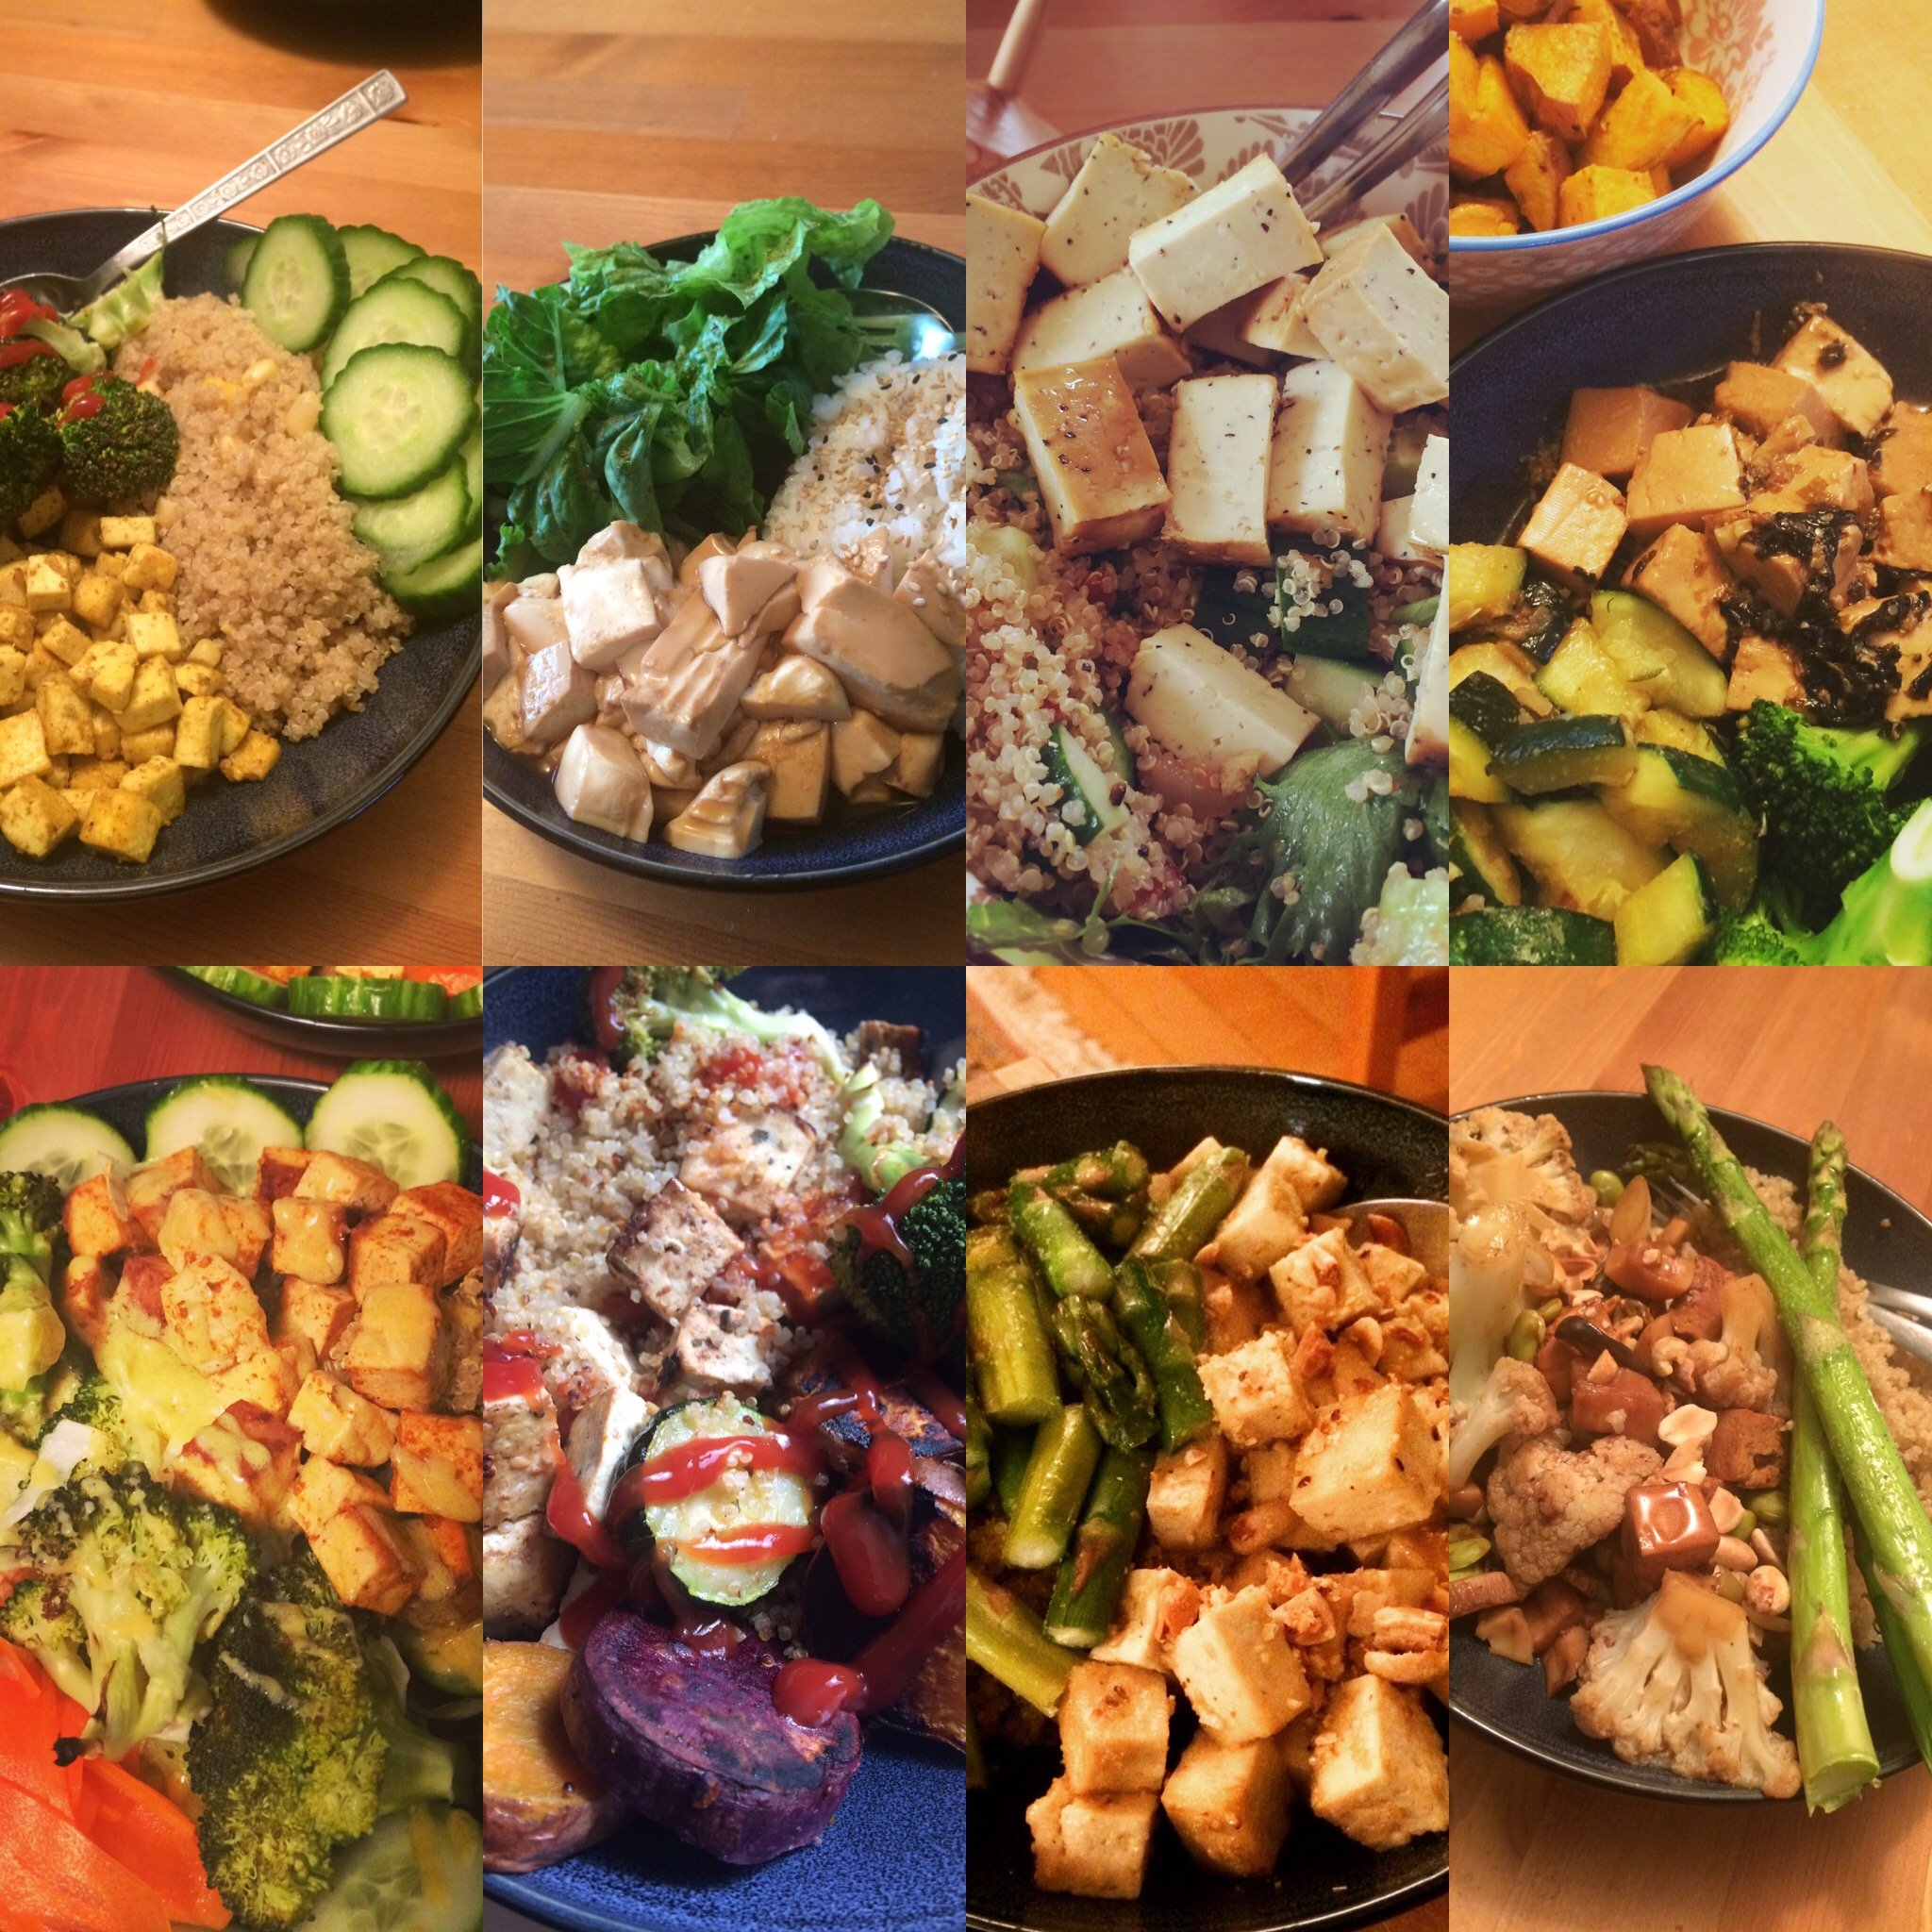 What I've been eating for the last 2 months!